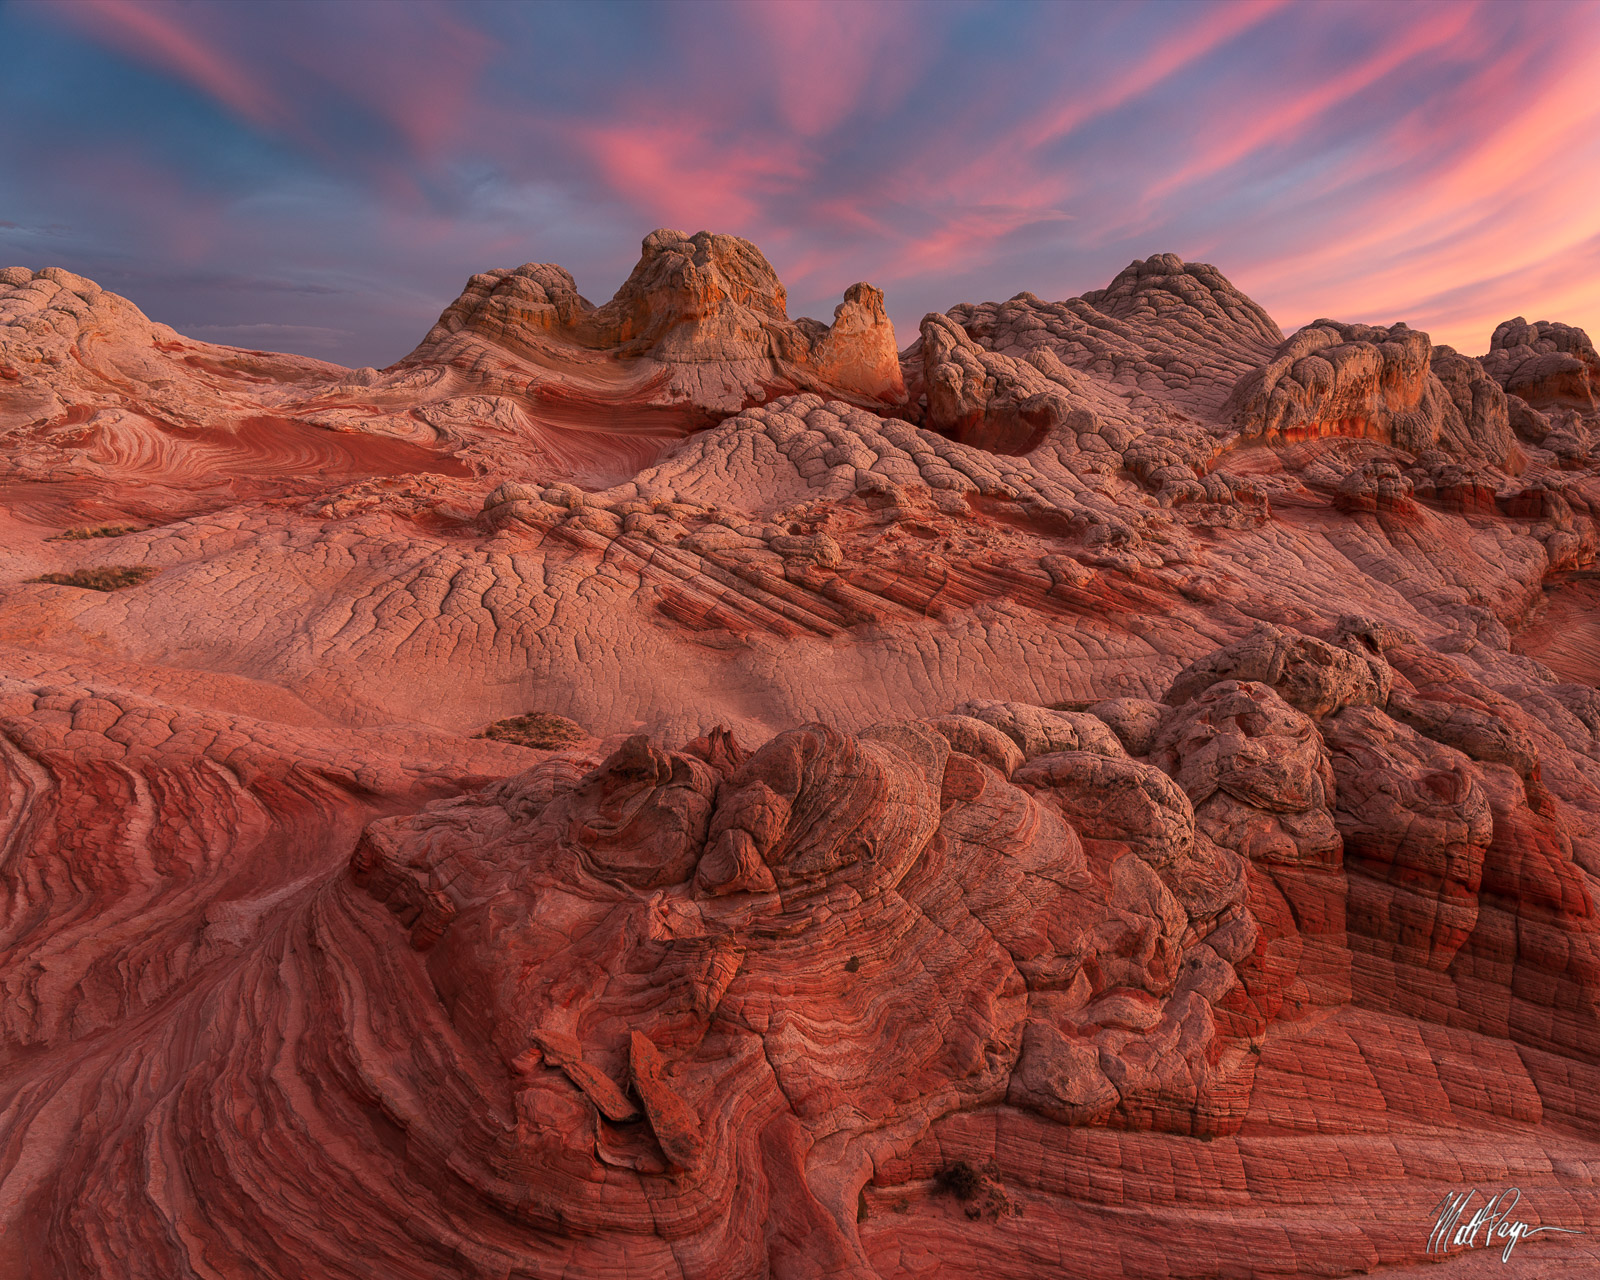 Landscape, Rock, Southwest, Spring, Desert, Arizona, Vermillion Cliffs National Monument, wide angle, waves, color, sandstone, shapes, patterns, nature, photo